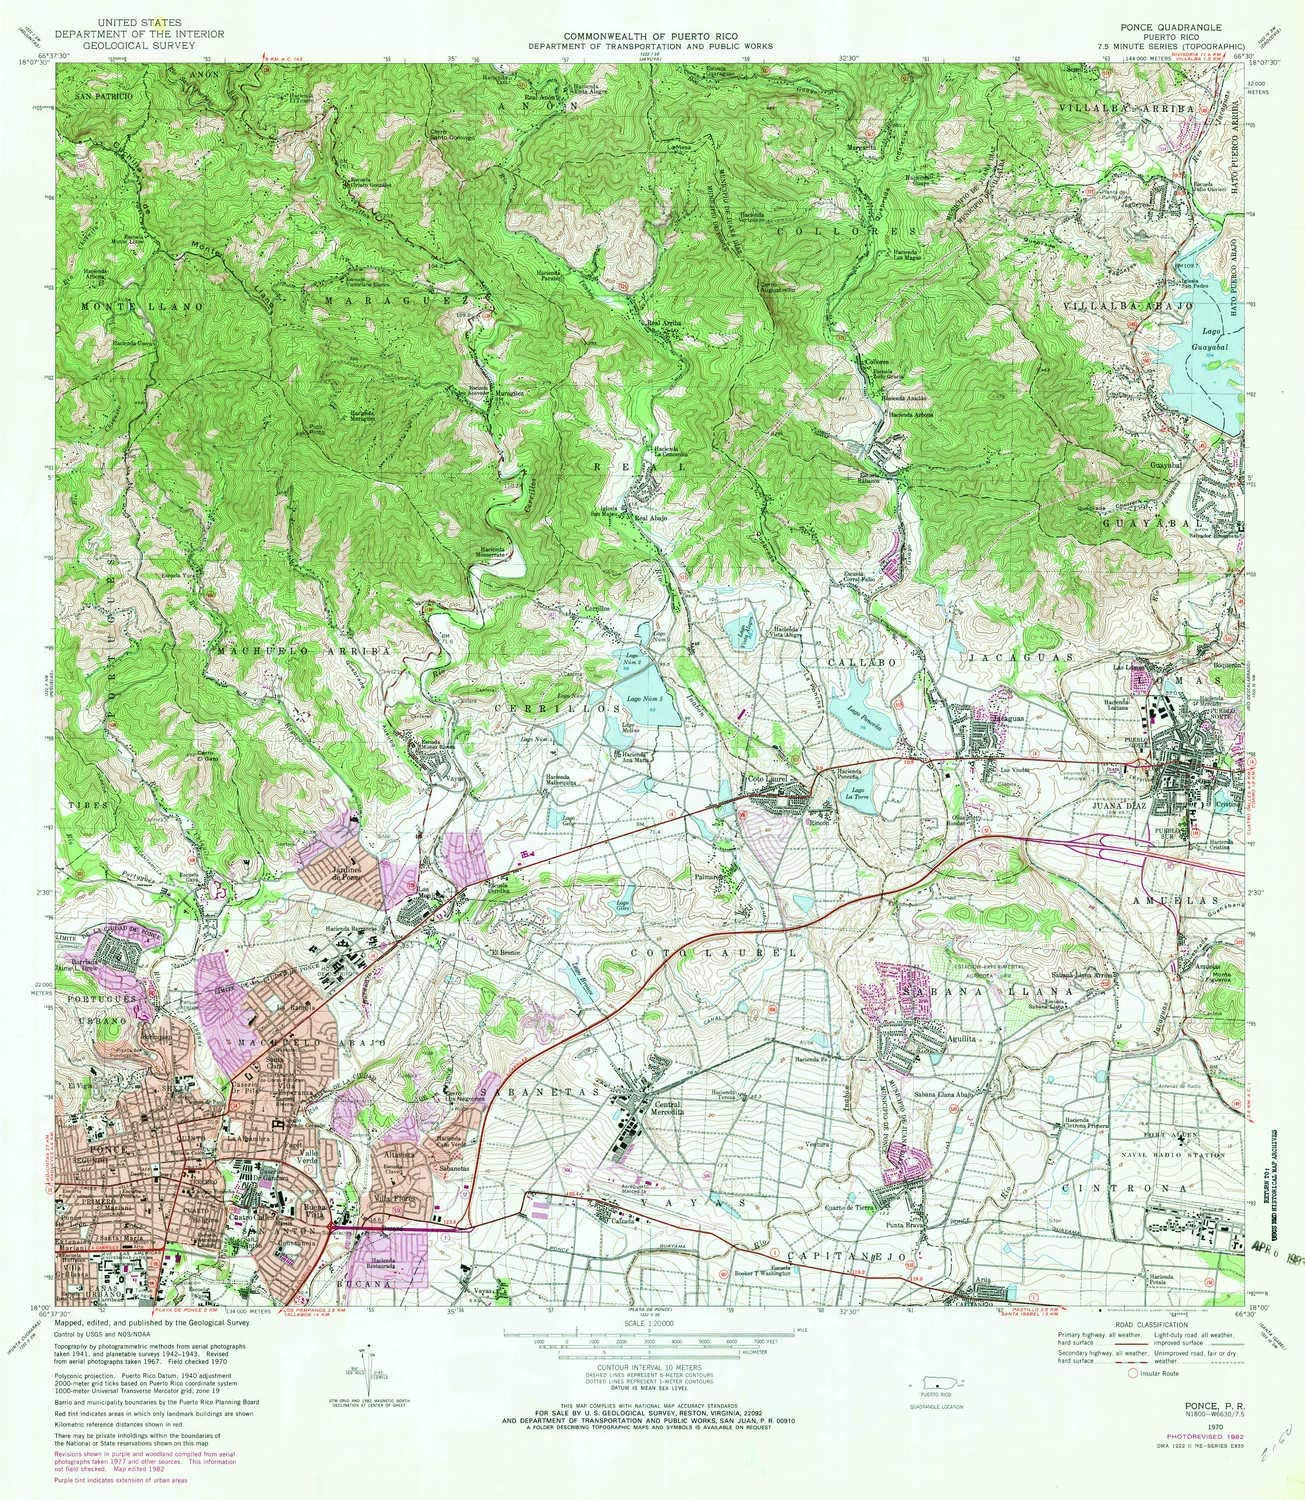 YellowMaps Ponce PR Free shipping anywhere in the nation topo map 1:20000 supreme X Minute H 7.5 Scale